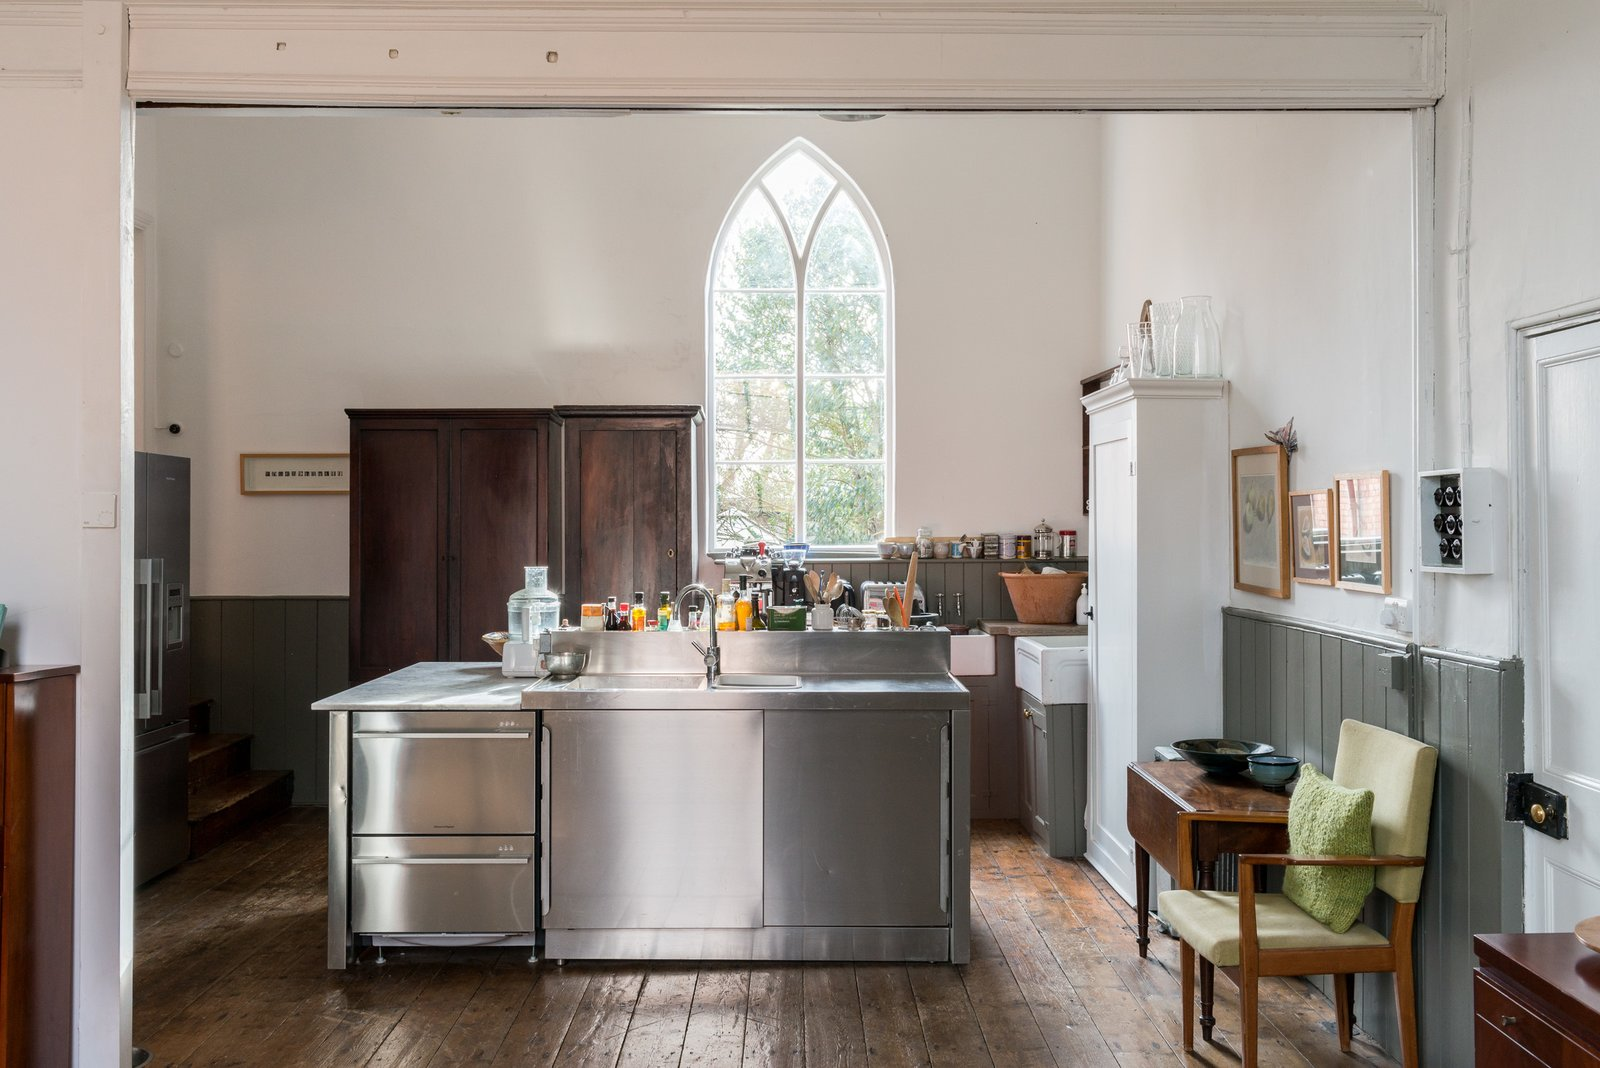 Kitchen, Wood Cabinet, Medium Hardwood Floor, and Metal Counter The kitchen layout takes consideration to a chef's needs.  Photos from A Converted 19th-Century Church in the English Countryside Asks $923K